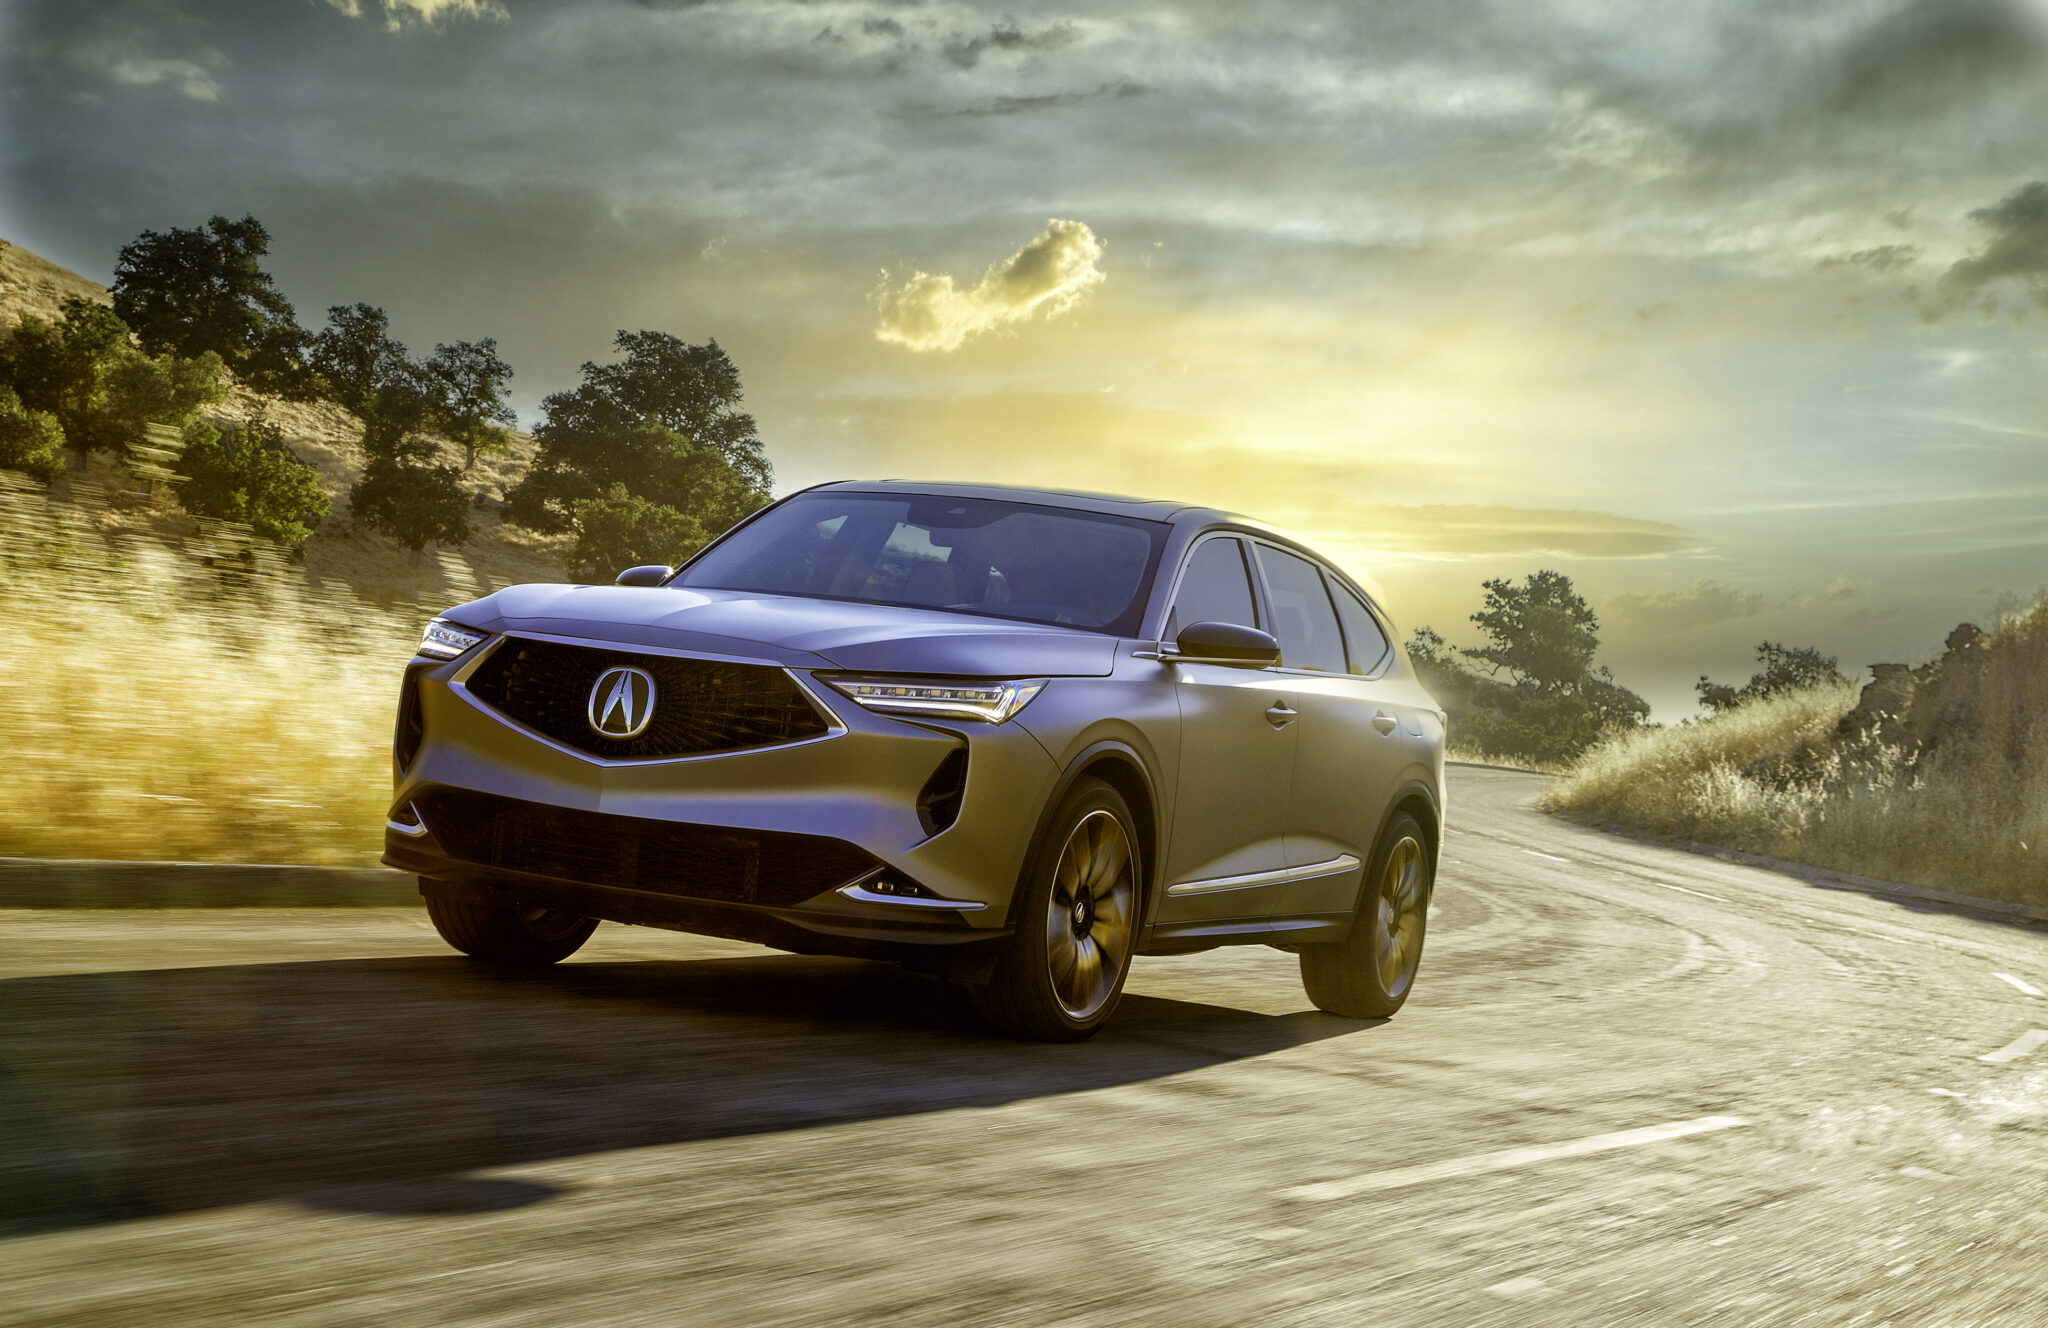 NEW ACURA MDX PROTOTYPE PREVUES PERFORMANCE AND PREMIUM FOCUS